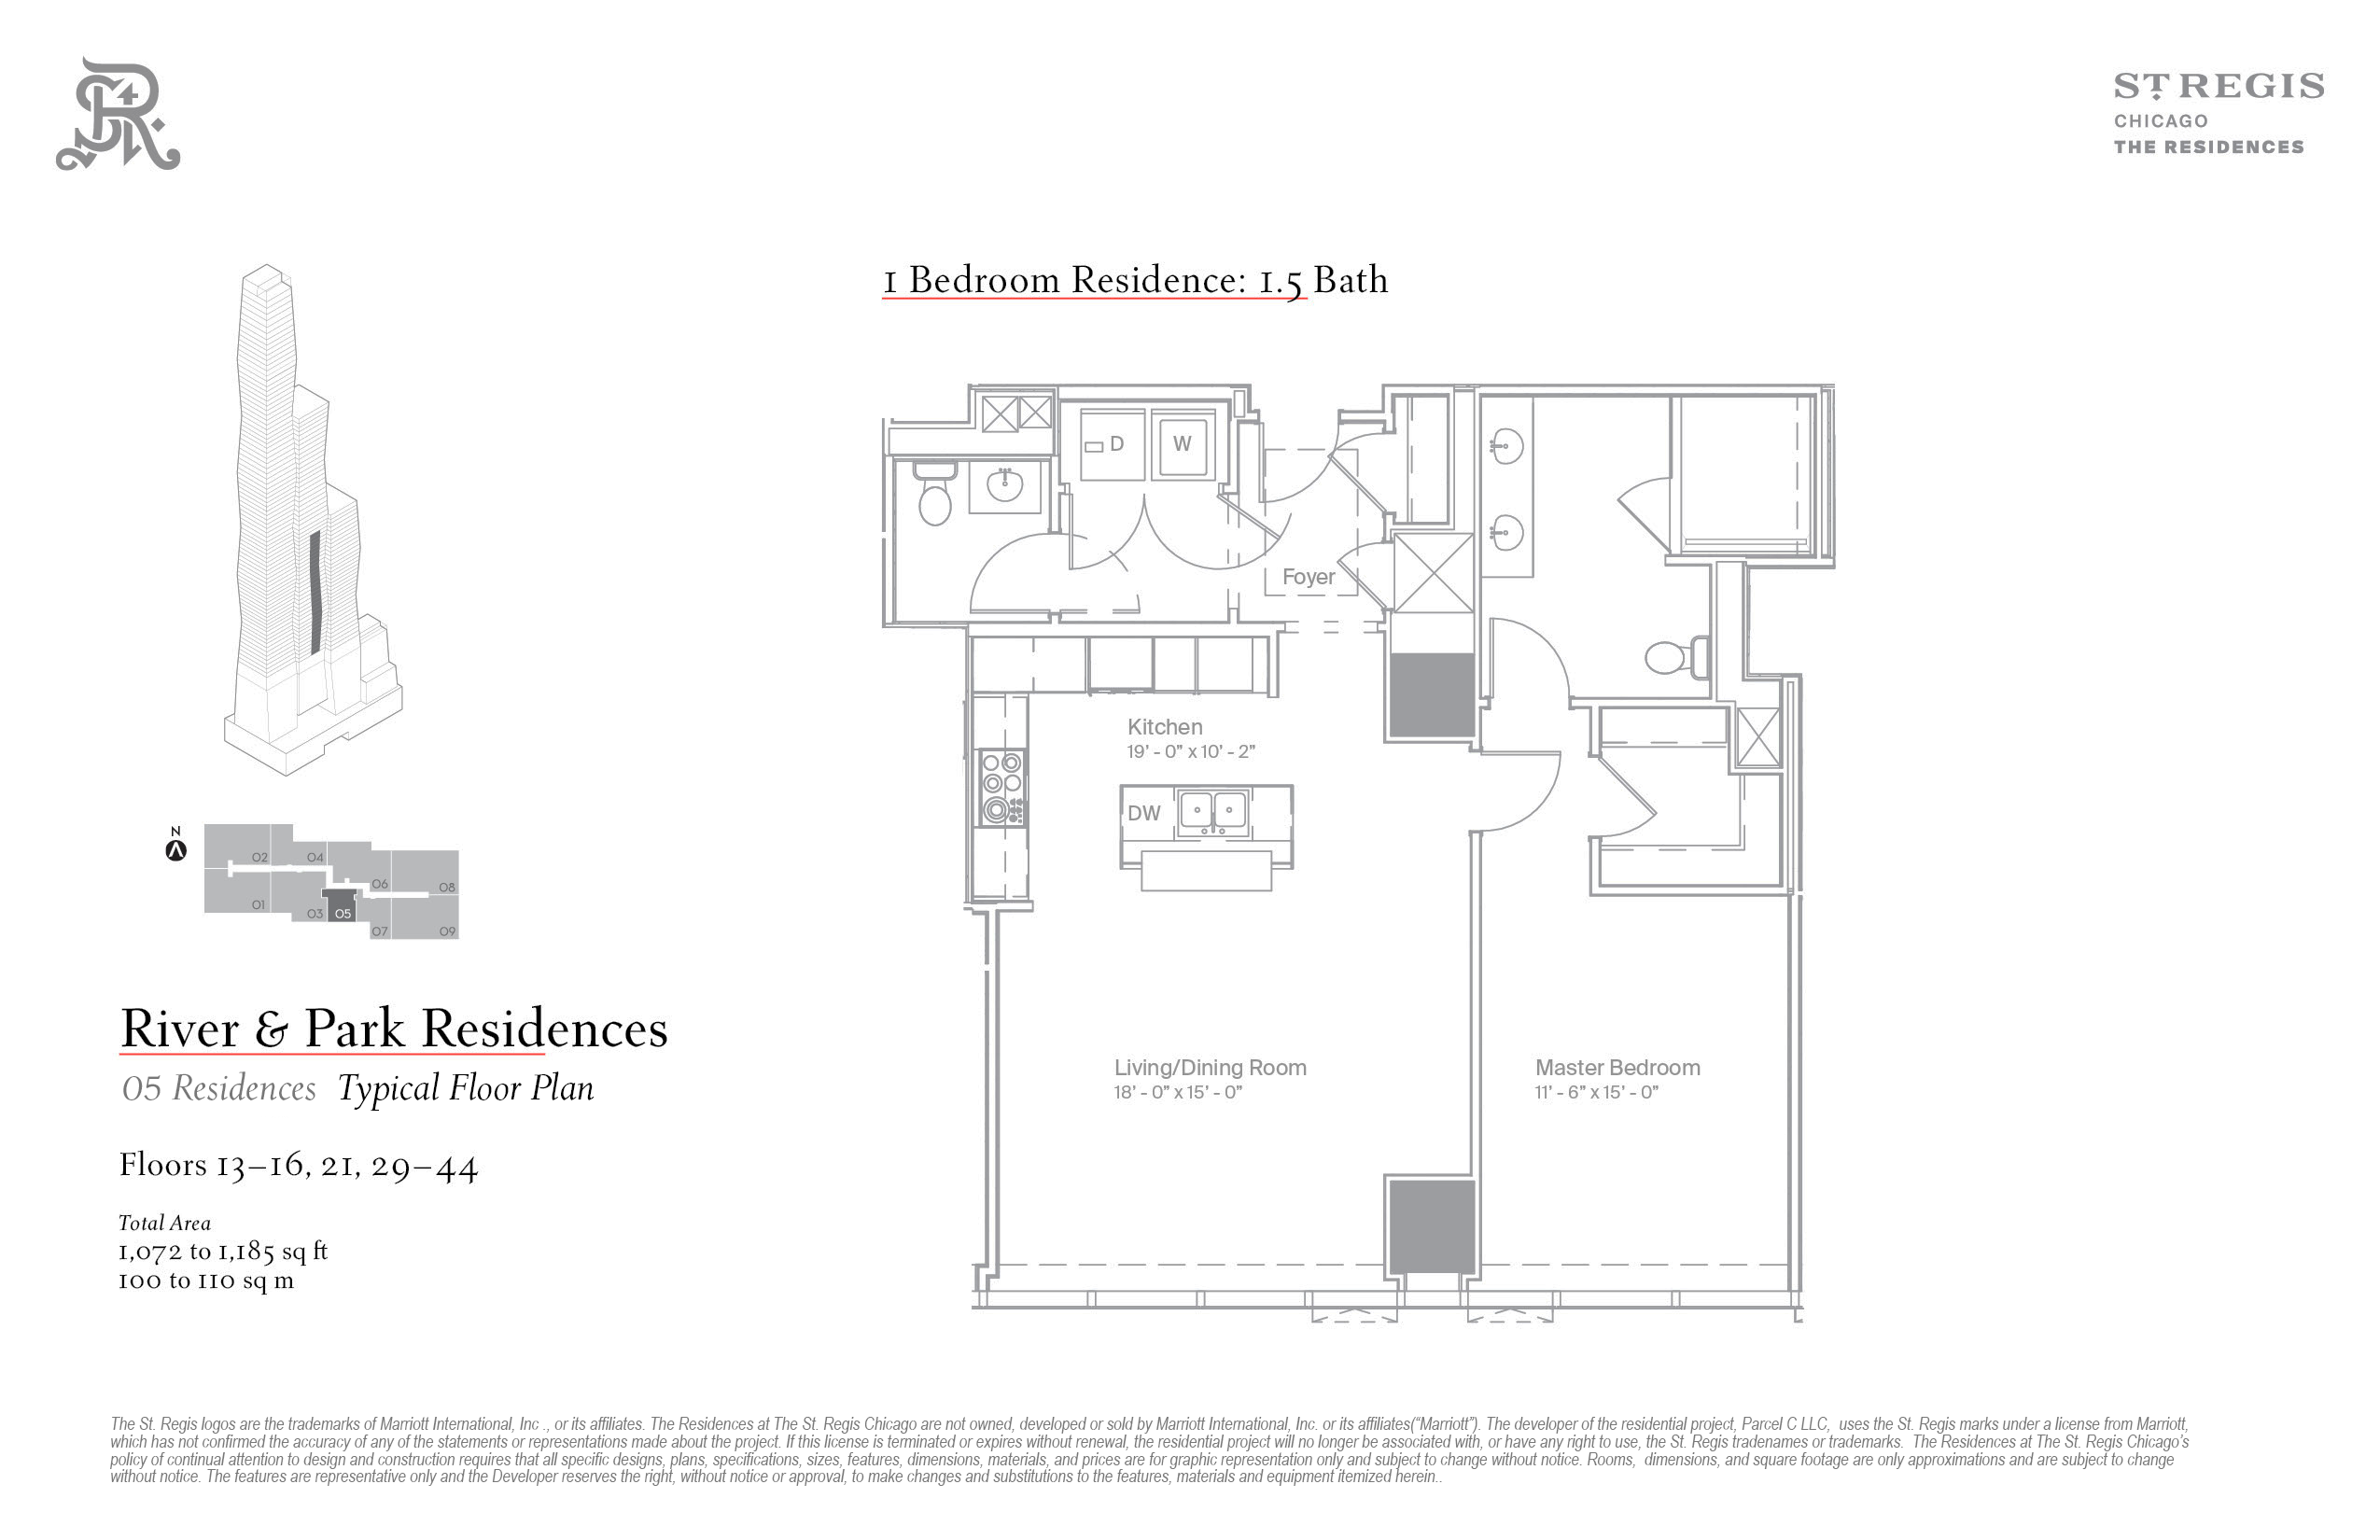 Residence 5 at The St. Regis Chicago. Floor plan.